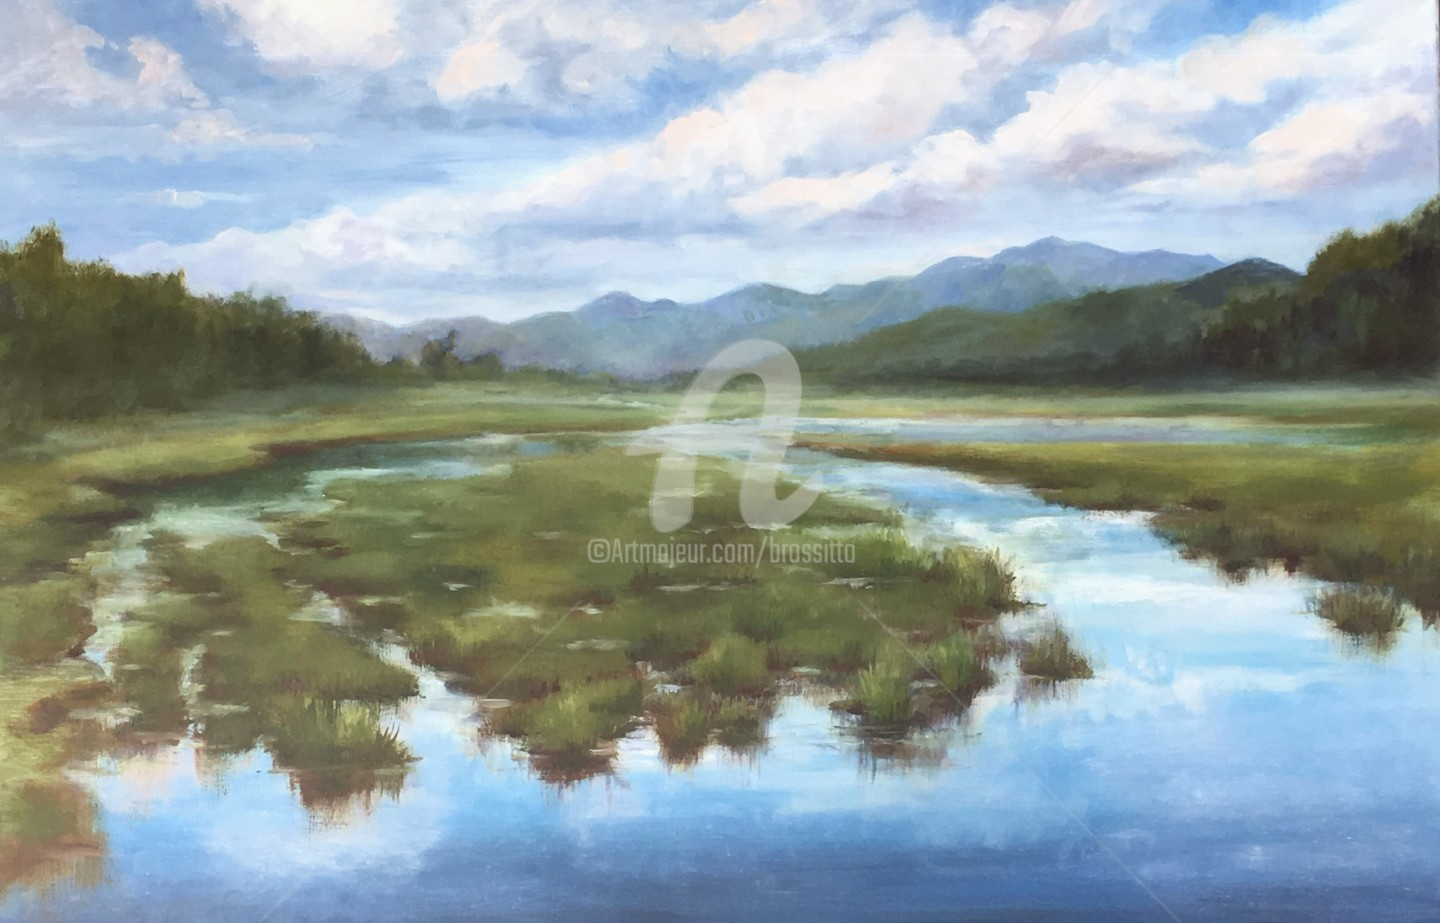 B.Rossitto - Where the Rivers converge – Adirondacks